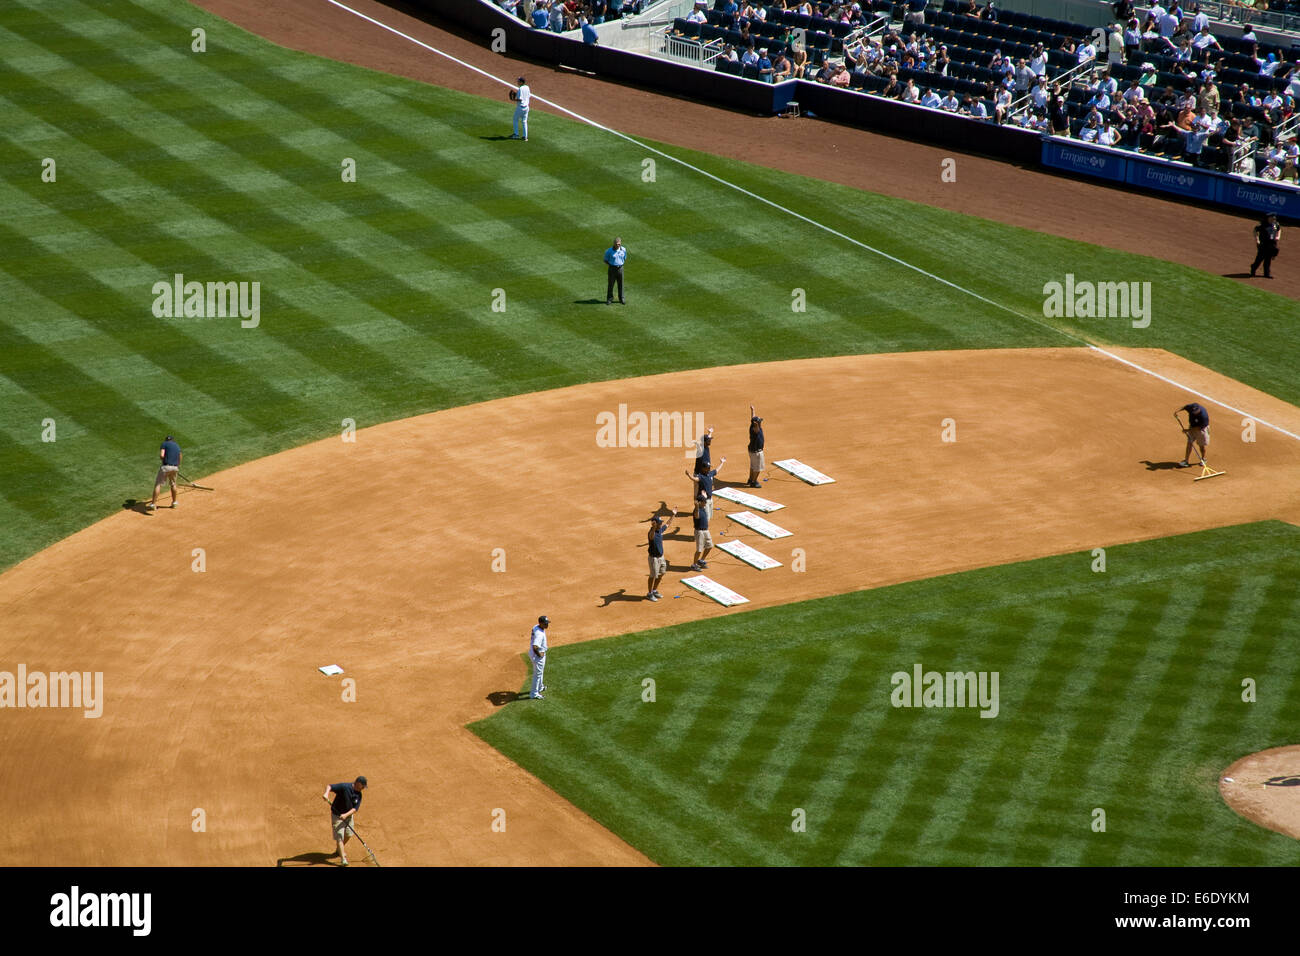 Ground Crew performing to the song 'YMCA' during 7th Inning stretch, Yankee Stadium (New), The Bronx, New York City, Stock Photo